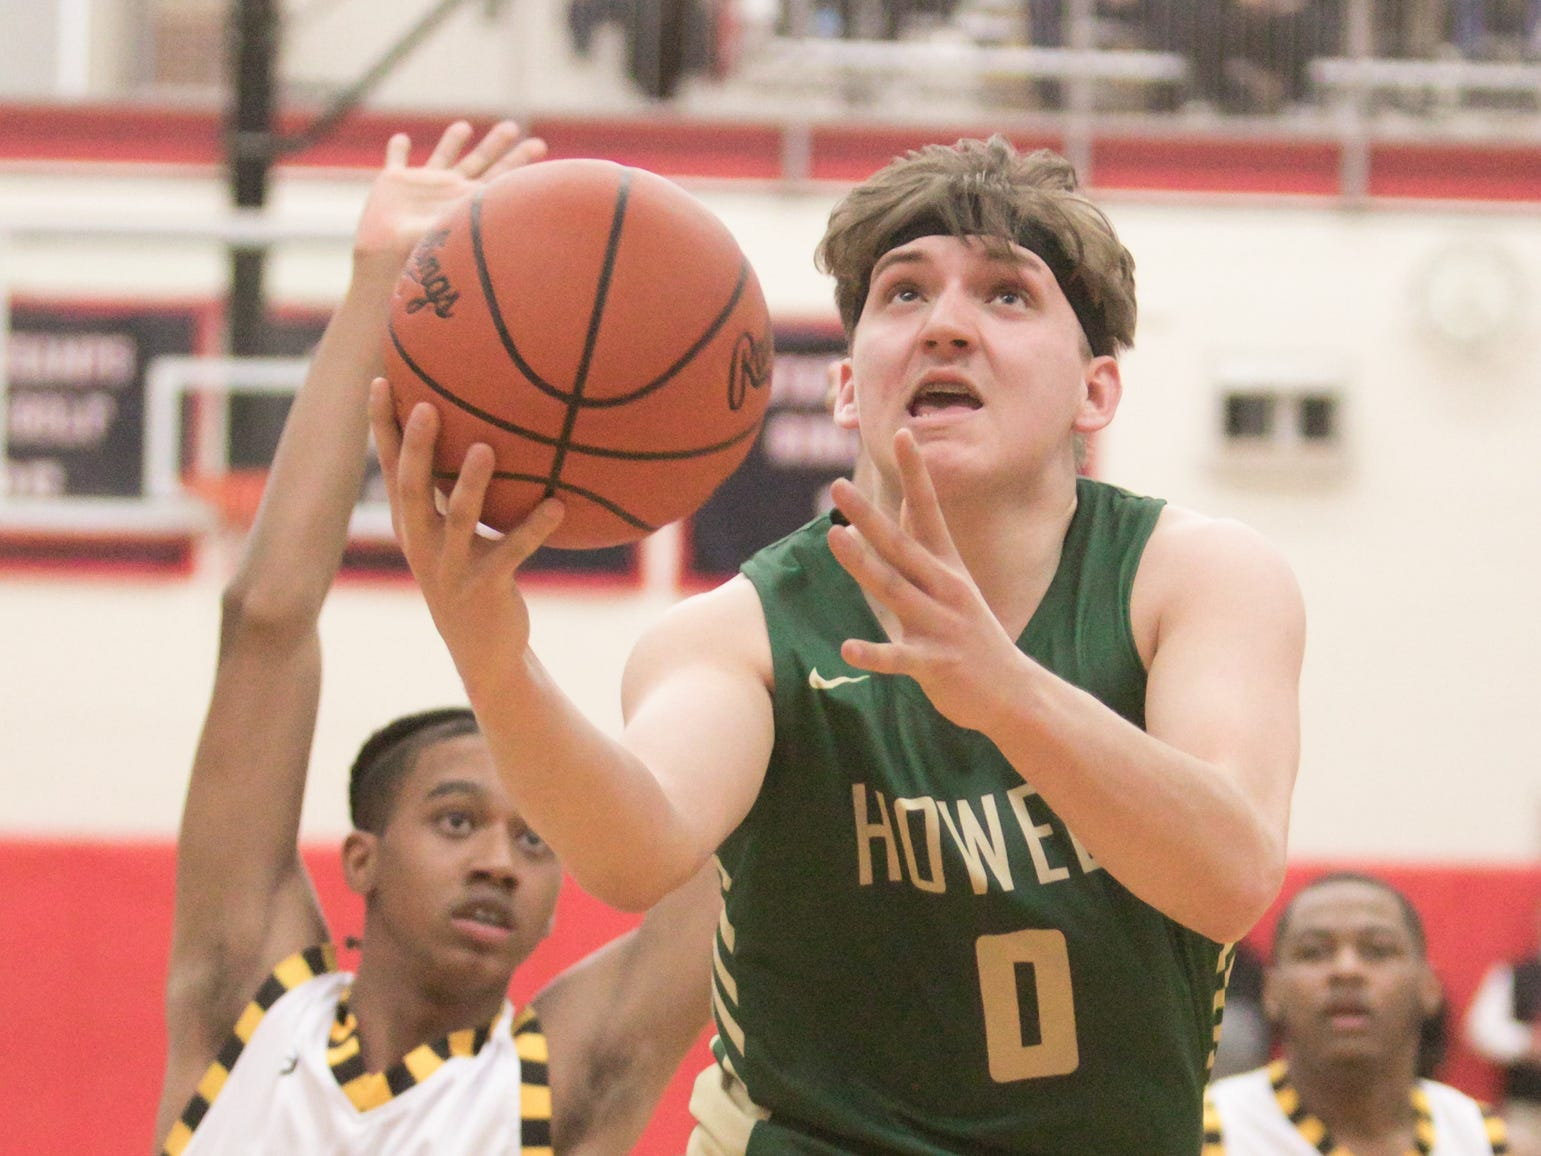 Howell's Josh Palo drives to the basket in a 57-56 victory over Saginaw in the state basketball quarterfinals at Grand Blanc on Tuesday, March 12, 2019.